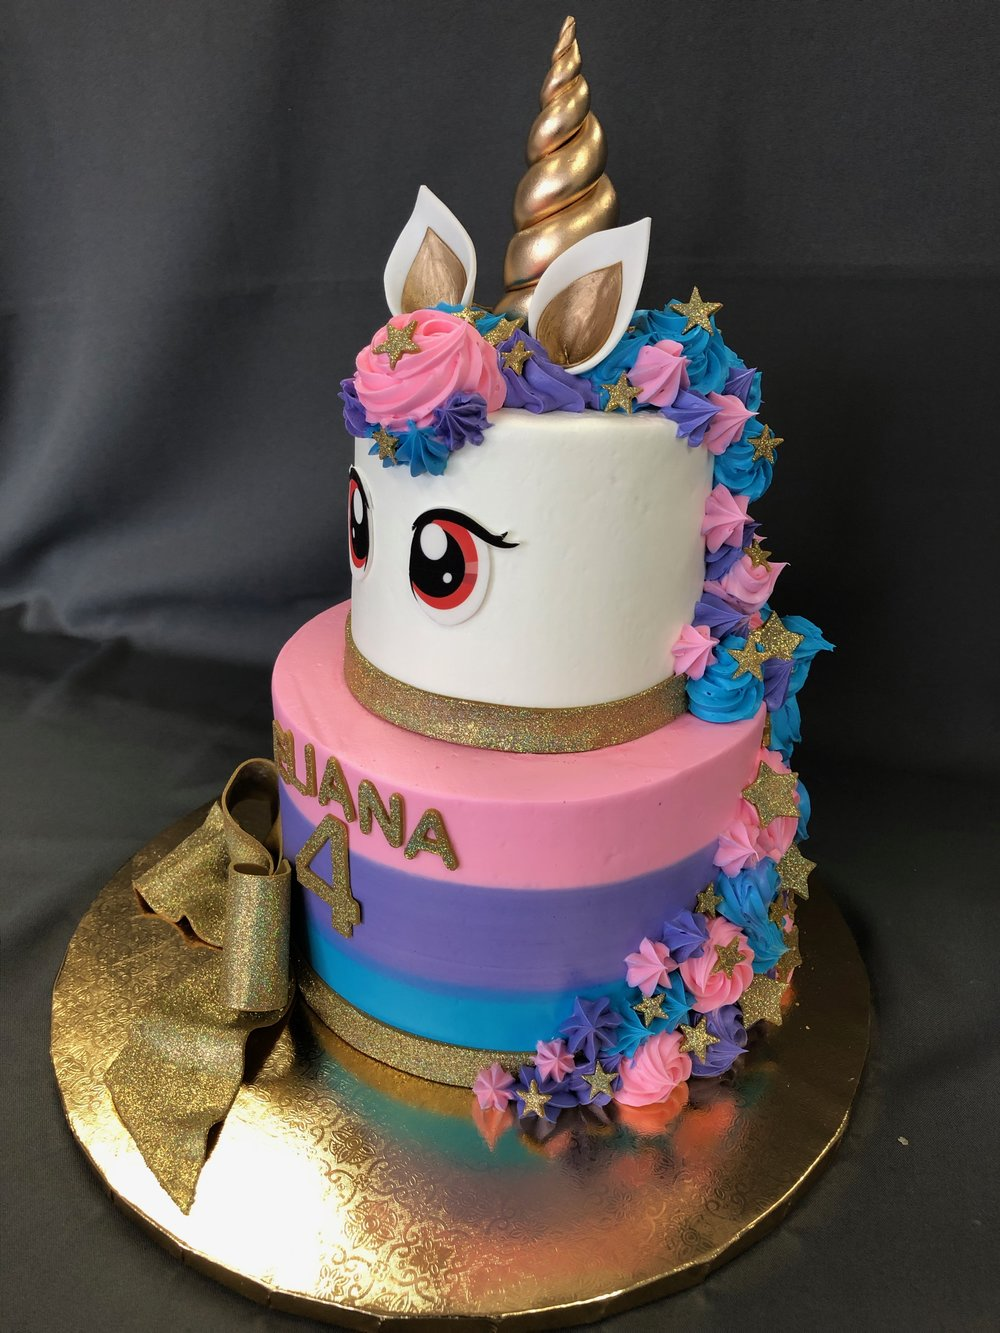 Best Unicorn Birthday Cake NJ